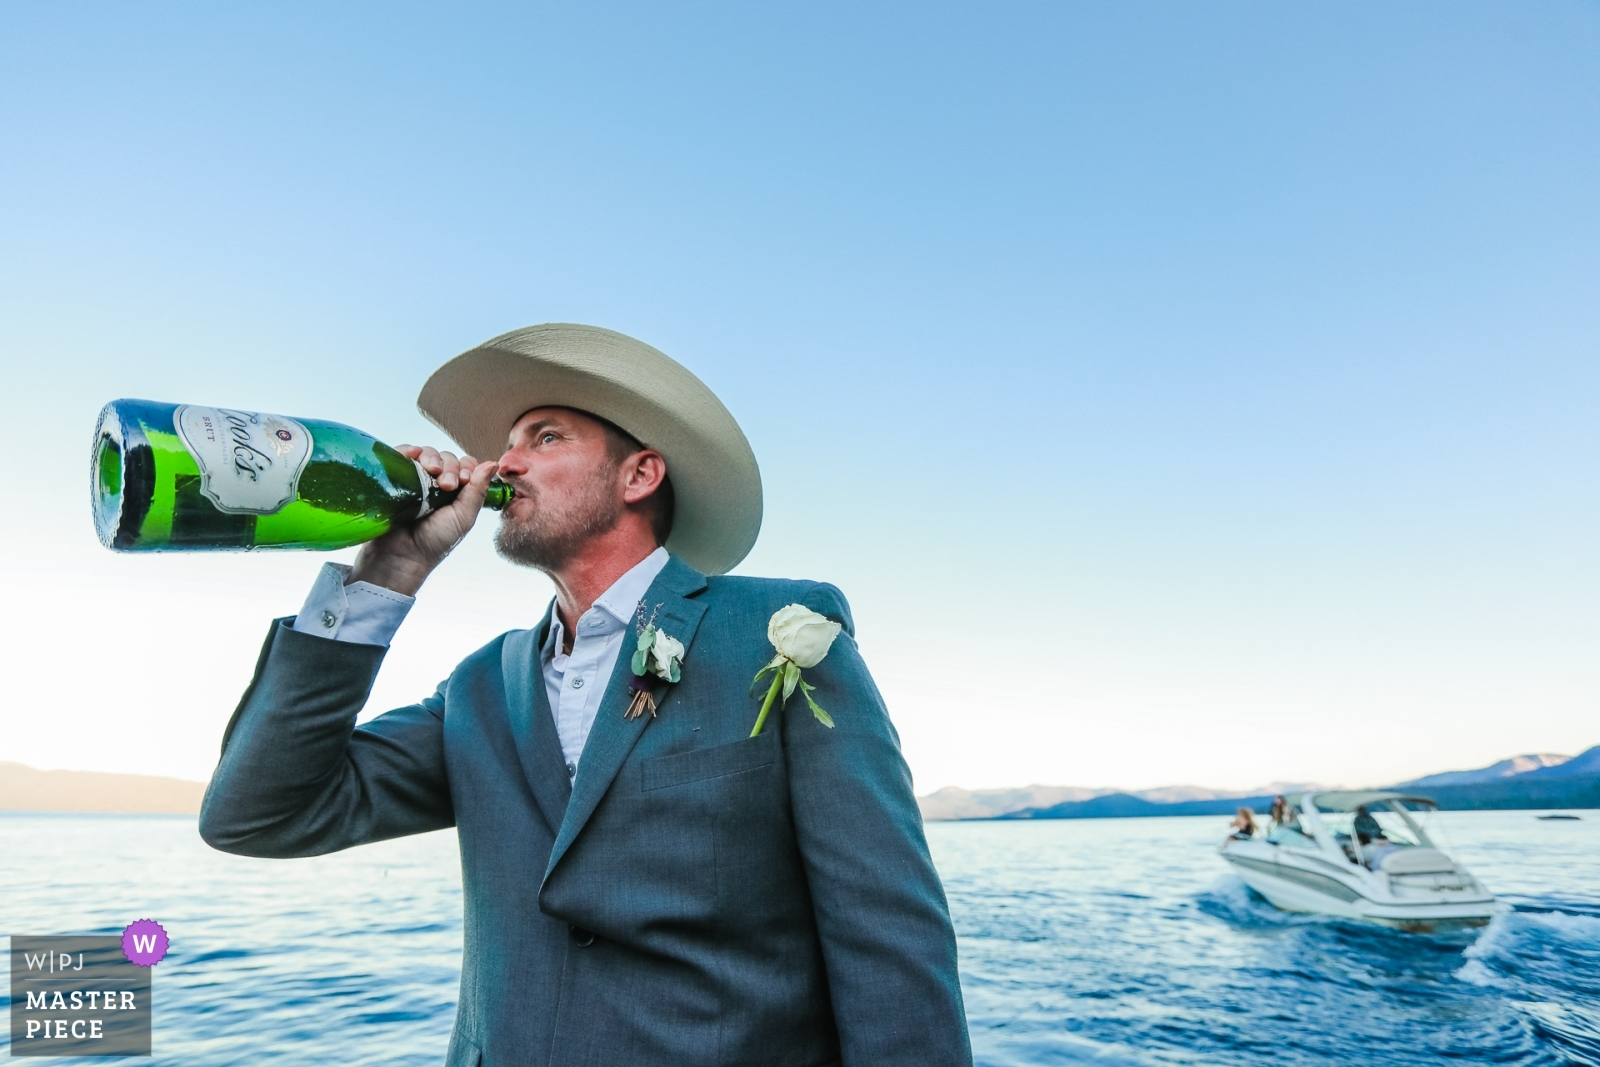 The groom enjoys just a small sip of champagne after his ceremony, held on a boat in the middle of Lake Tahoe.  - Lake Tahoe, California - Northern Wedding Photography -  | South Lake Tahoe, CA